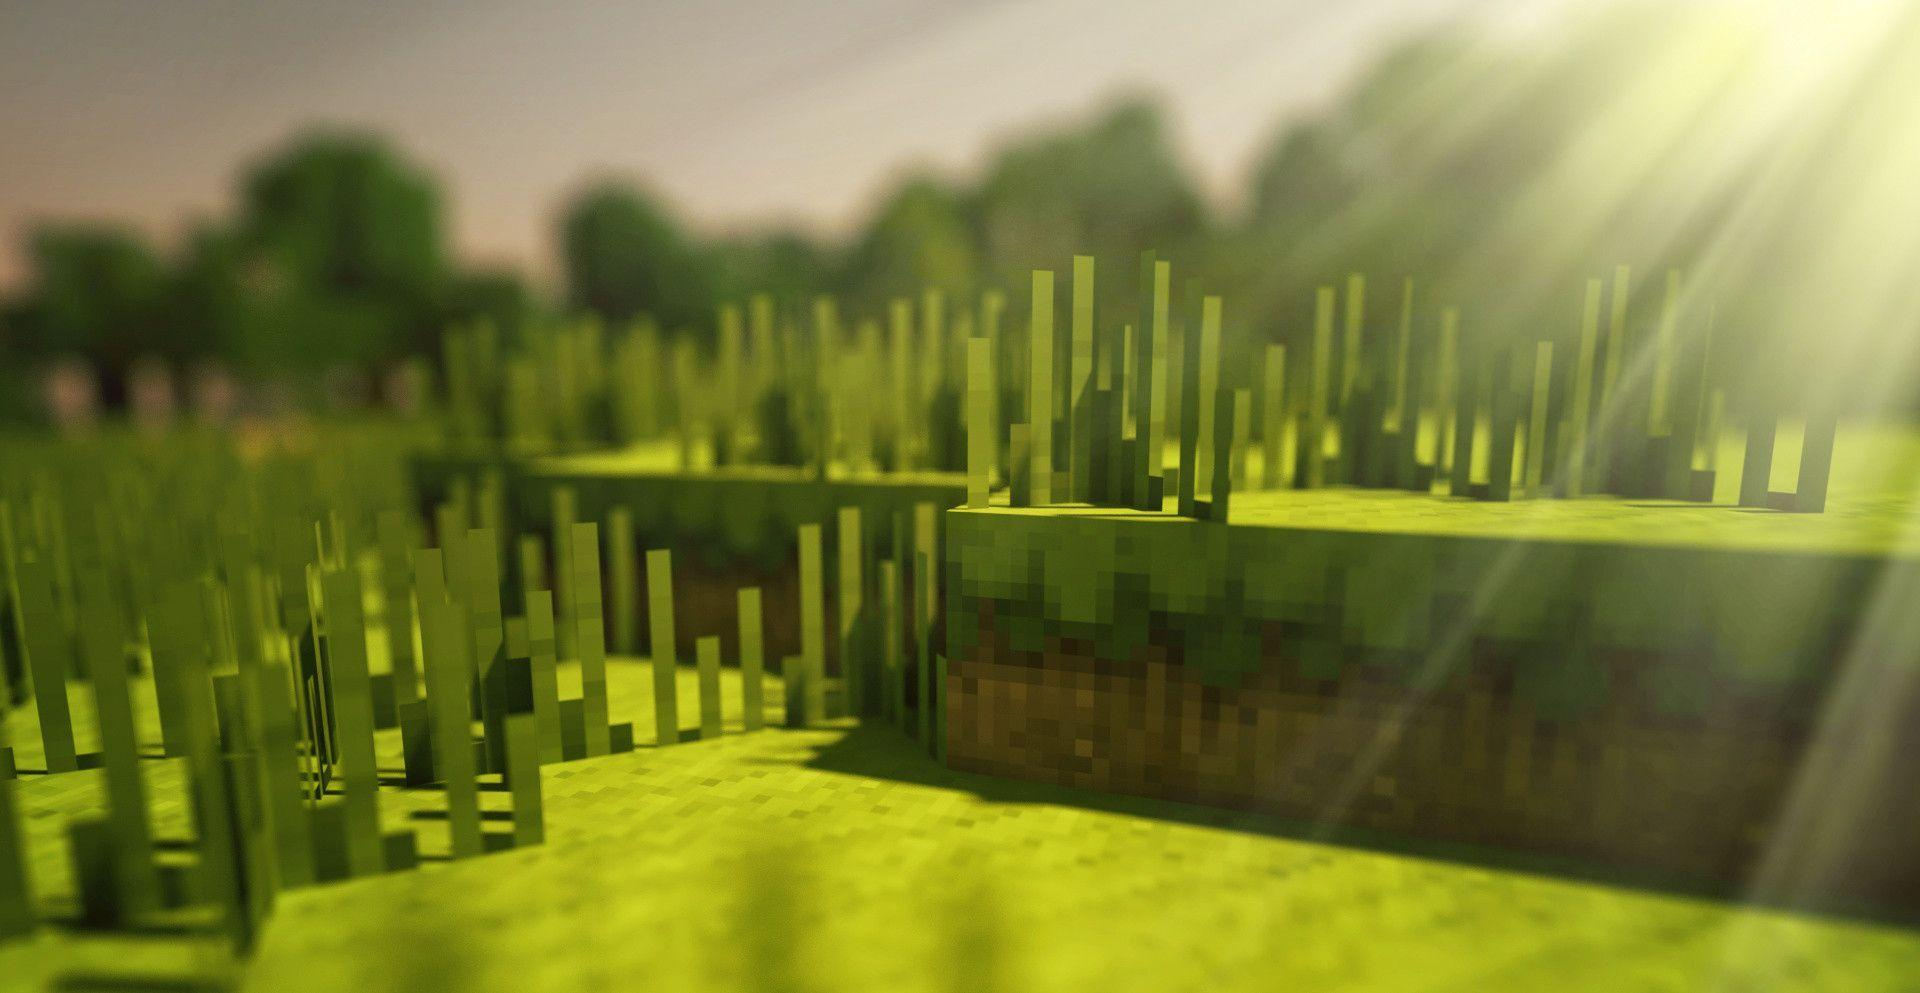 35 Awesome Minecraft wallpapers in HD | 1 Design Utopia Trend ...